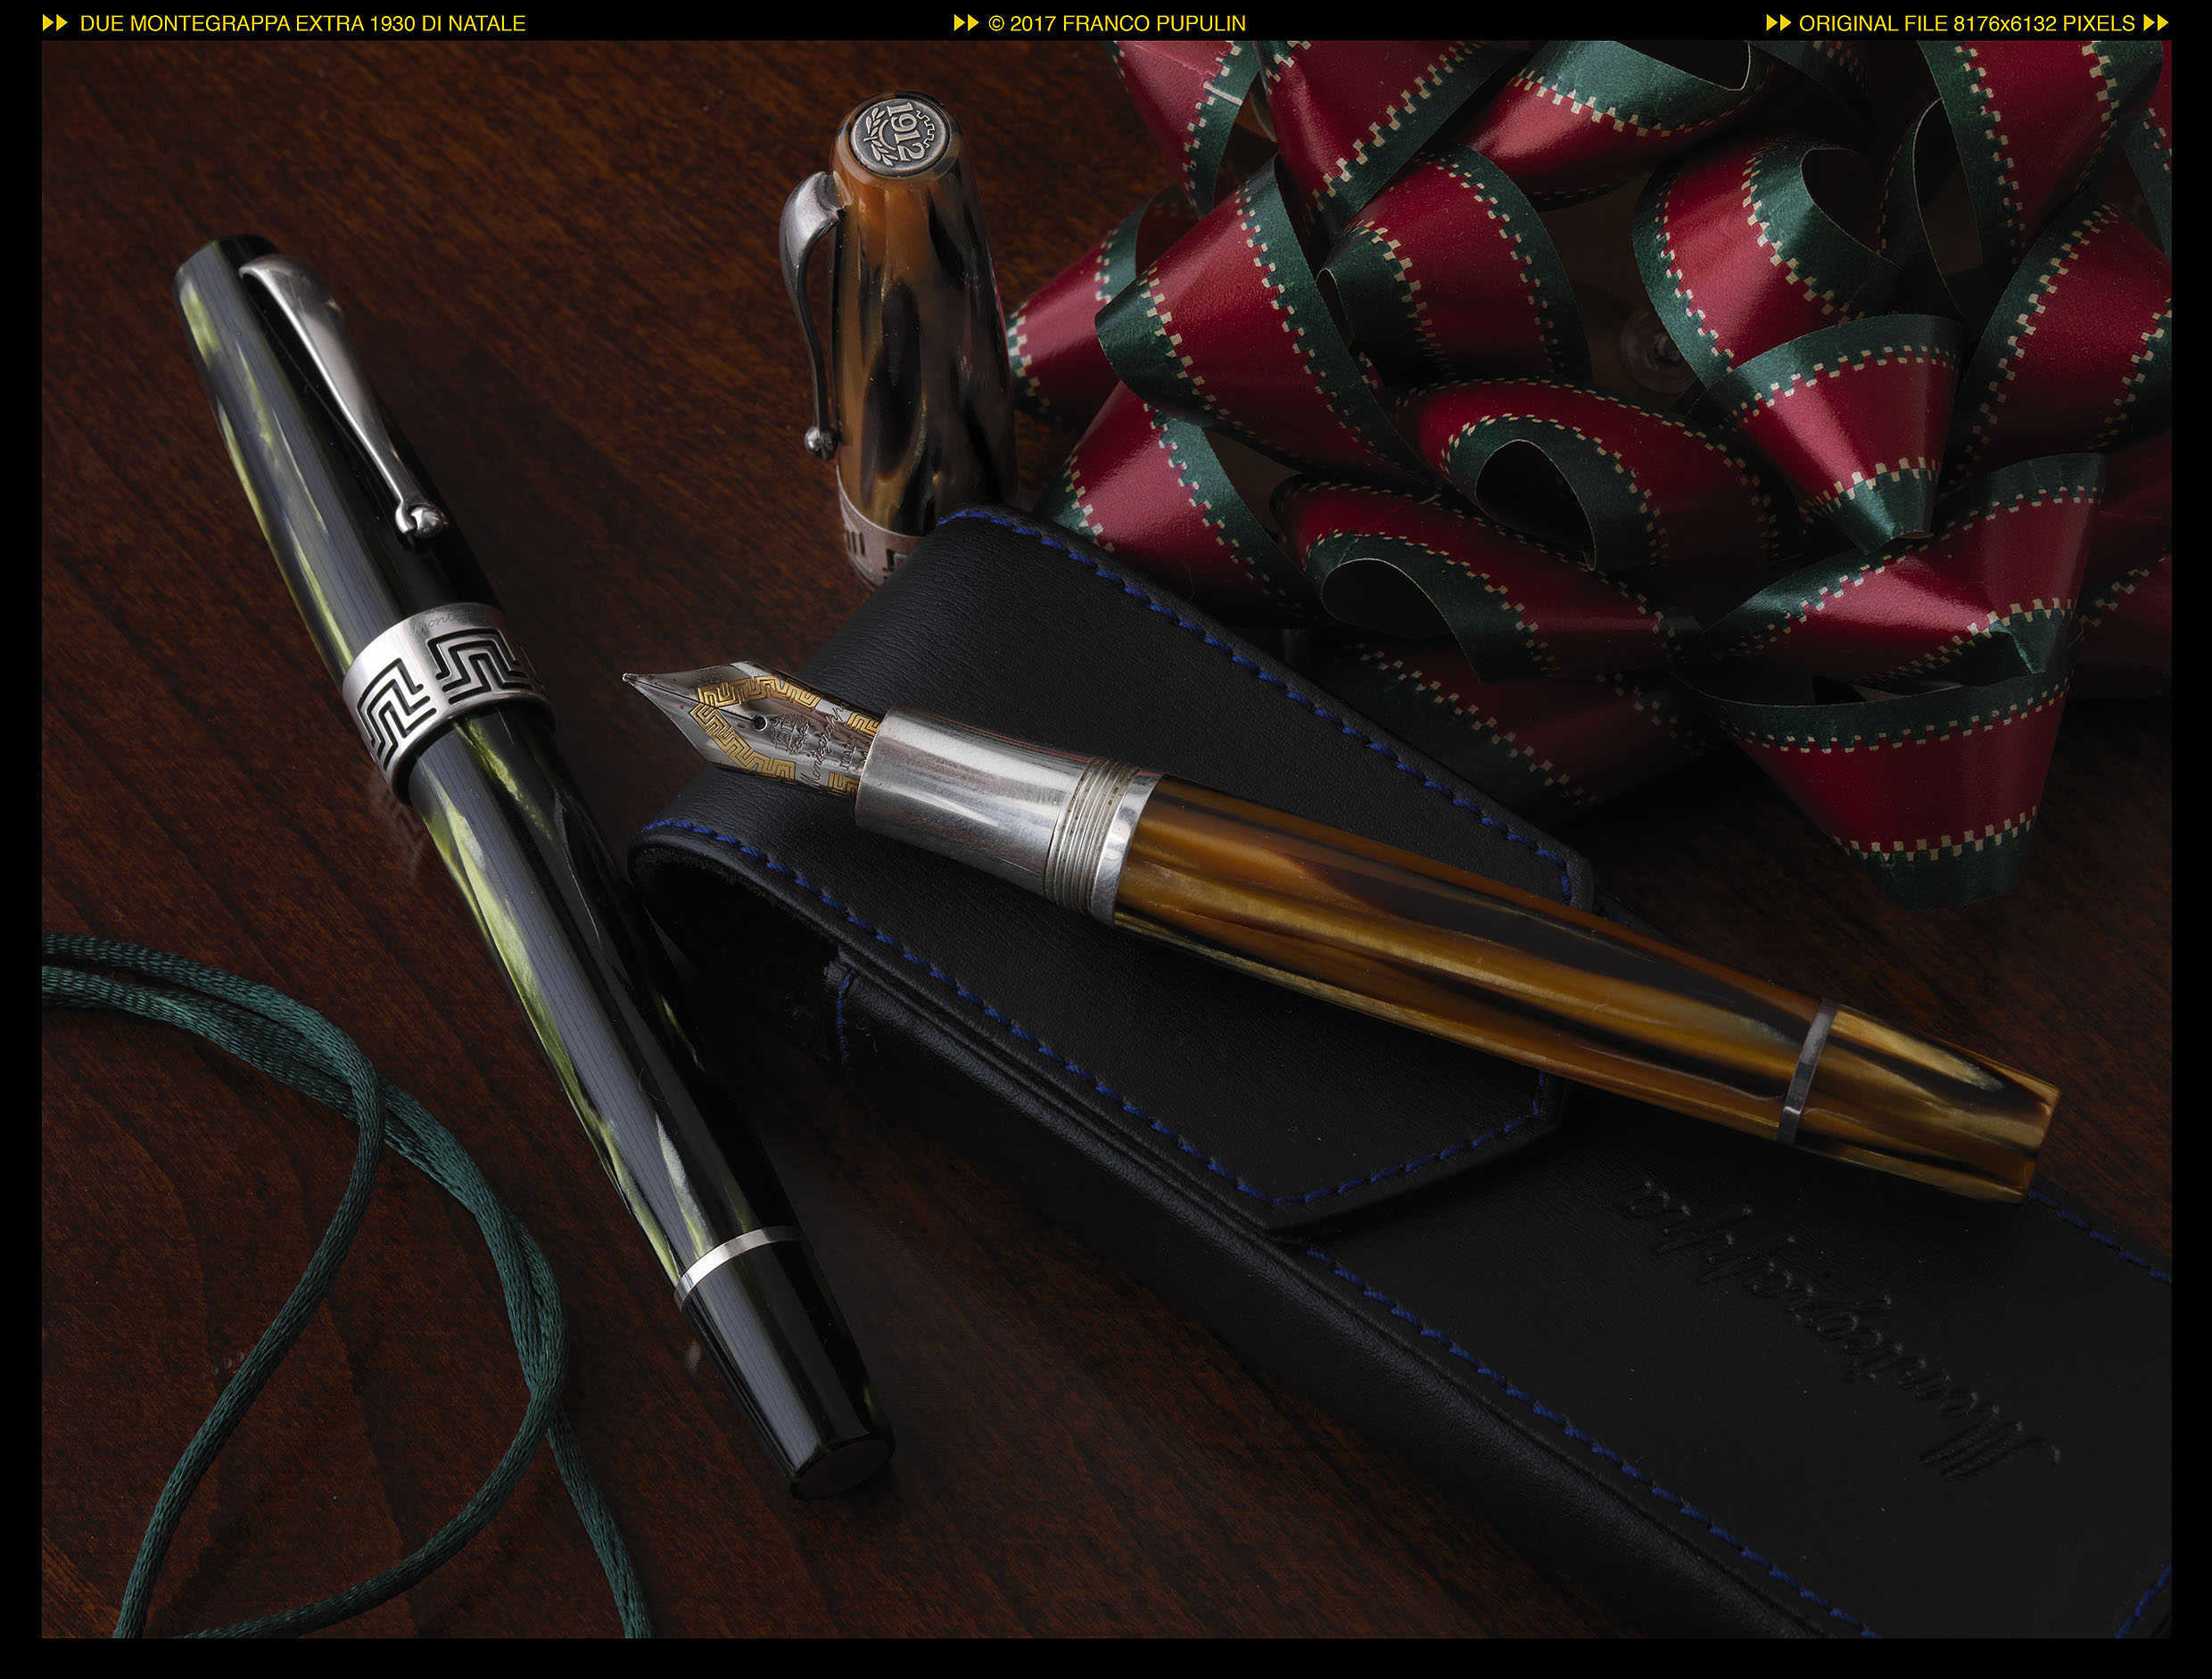 Due Montegrappa Extra 1930 di Natale ©FP.jpg